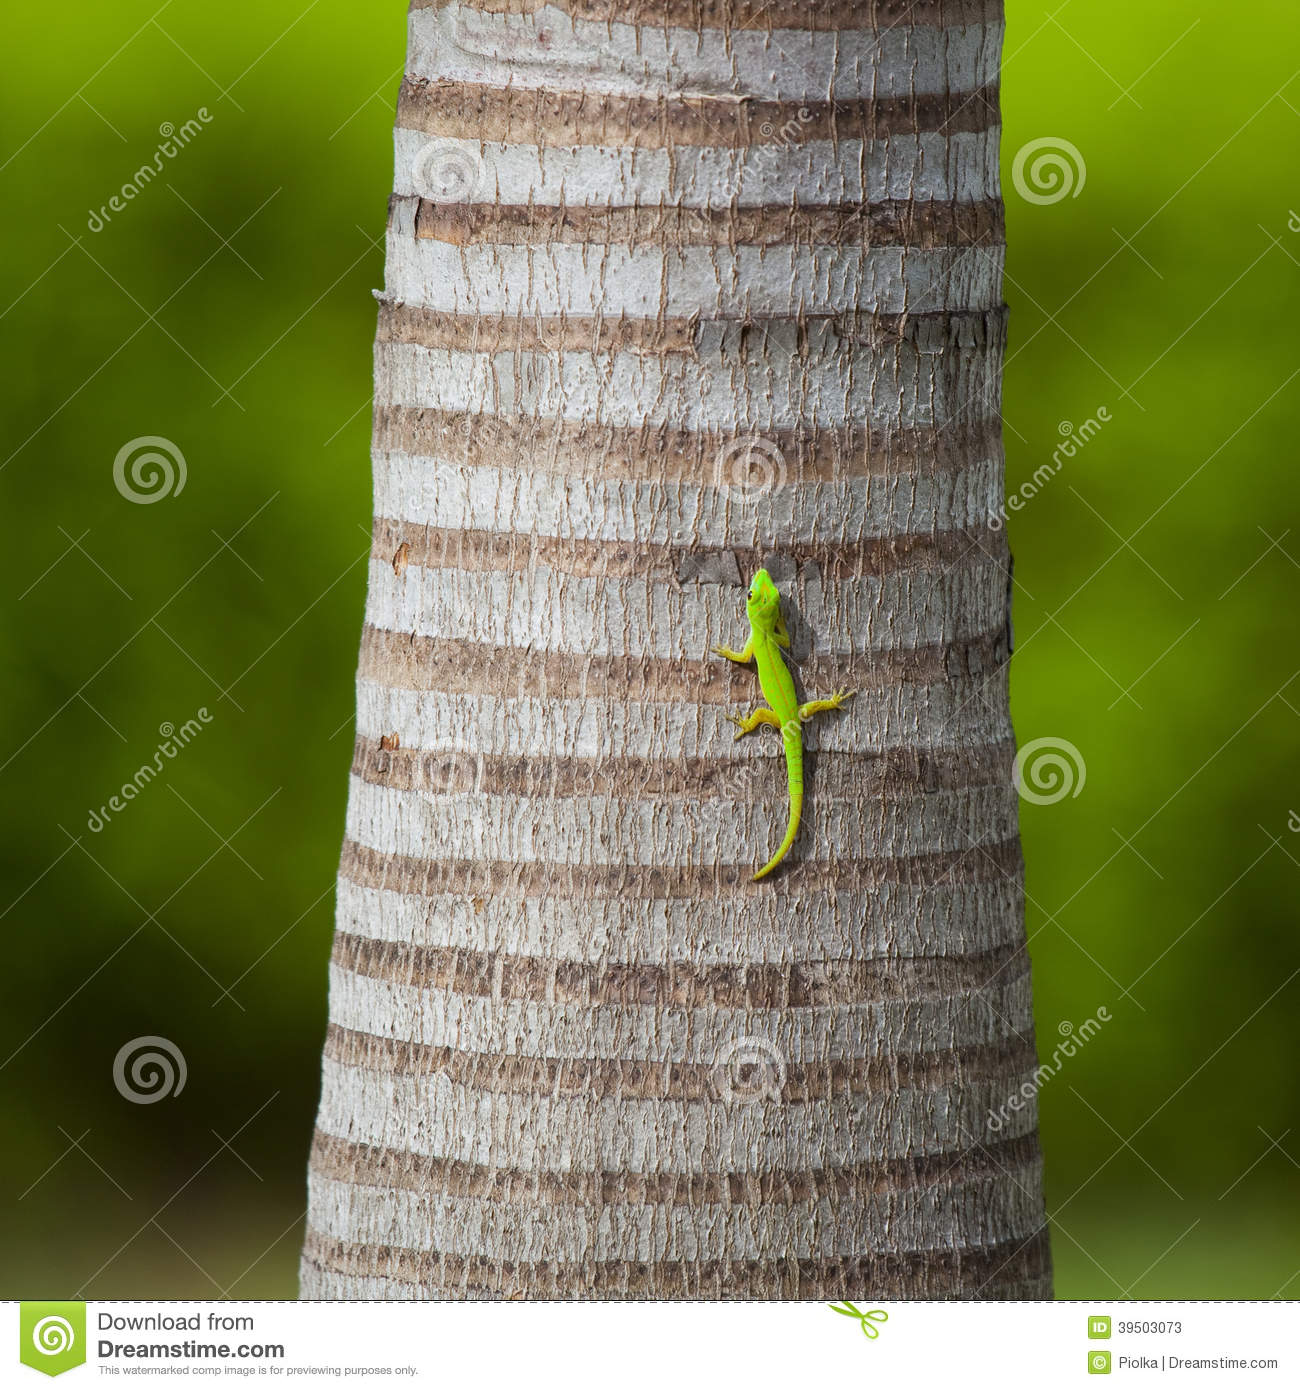 Green lizard on a palm trunk